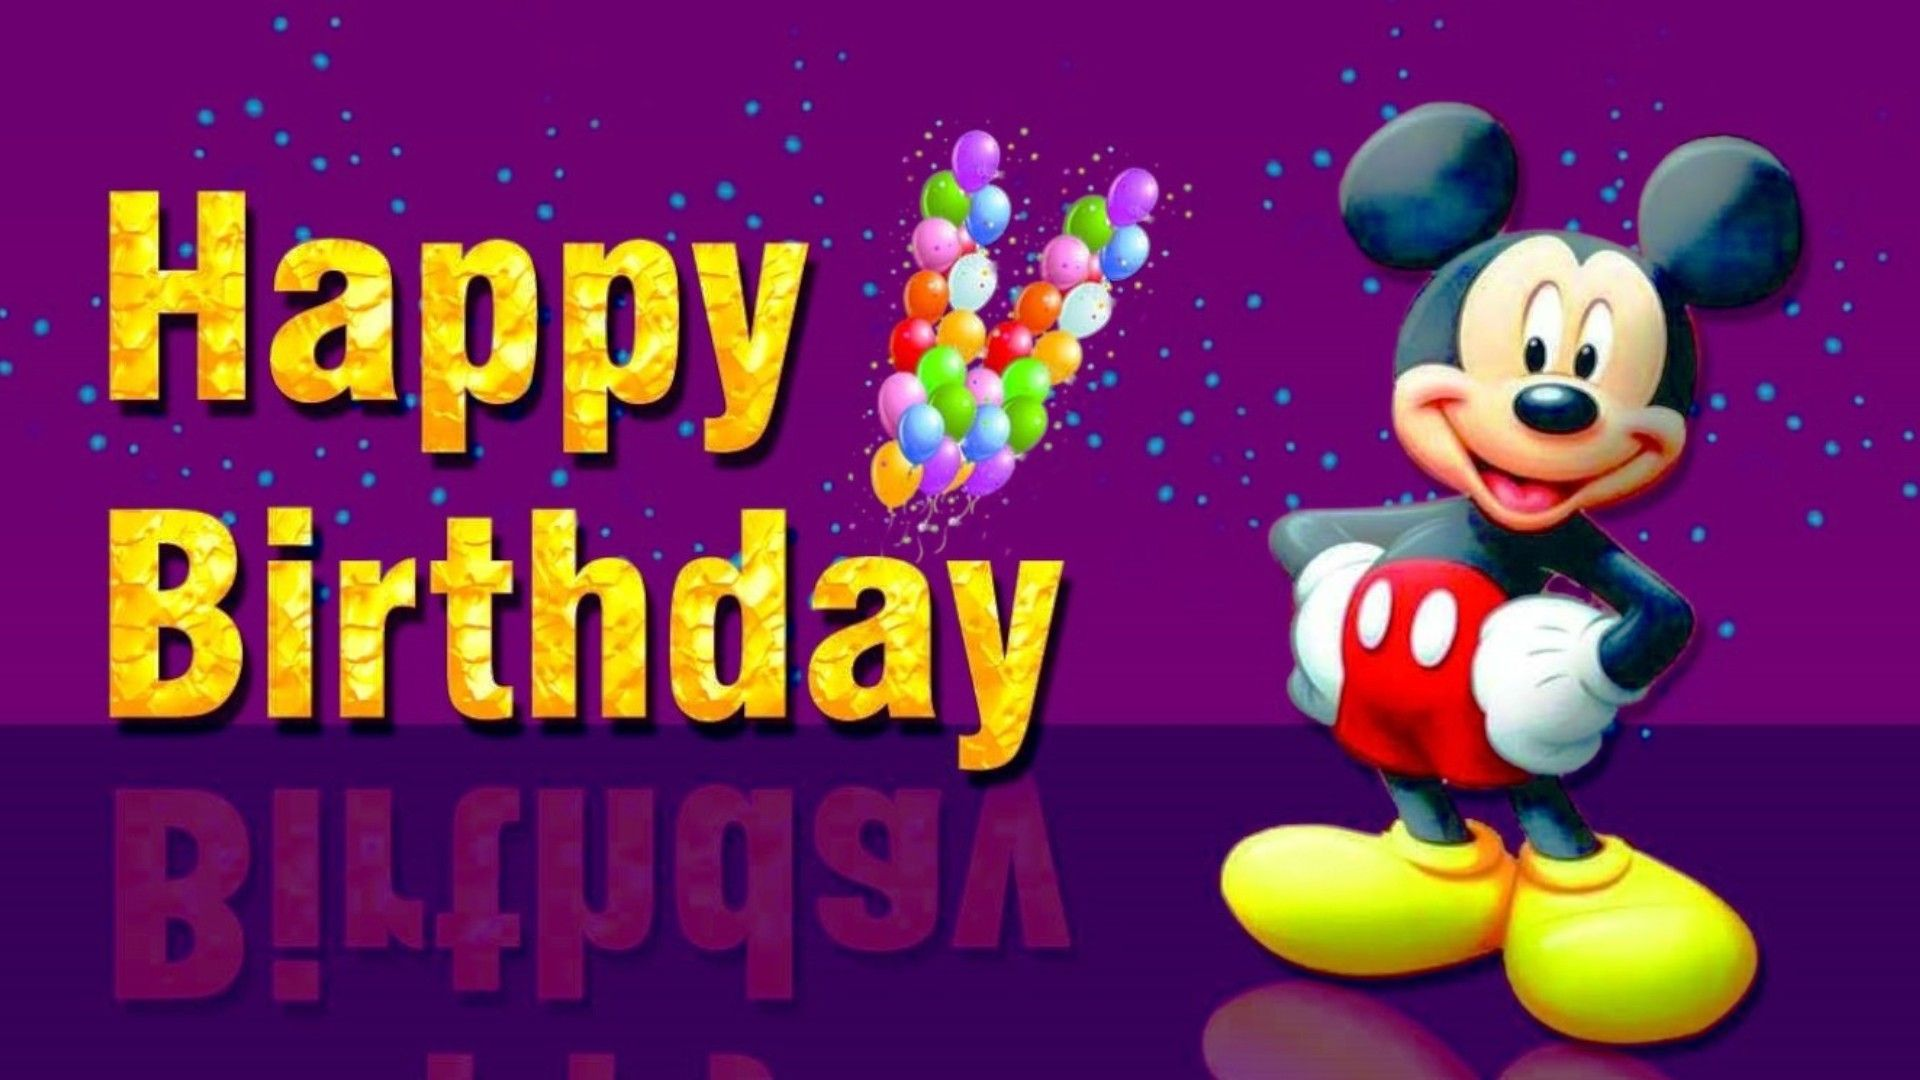 Happy birthday wishesgreetingswallpapersimageswhatsapp youtube happy birthday wishesgreetingswallpapersimageswhatsapp youtube 1920x1080 m4hsunfo